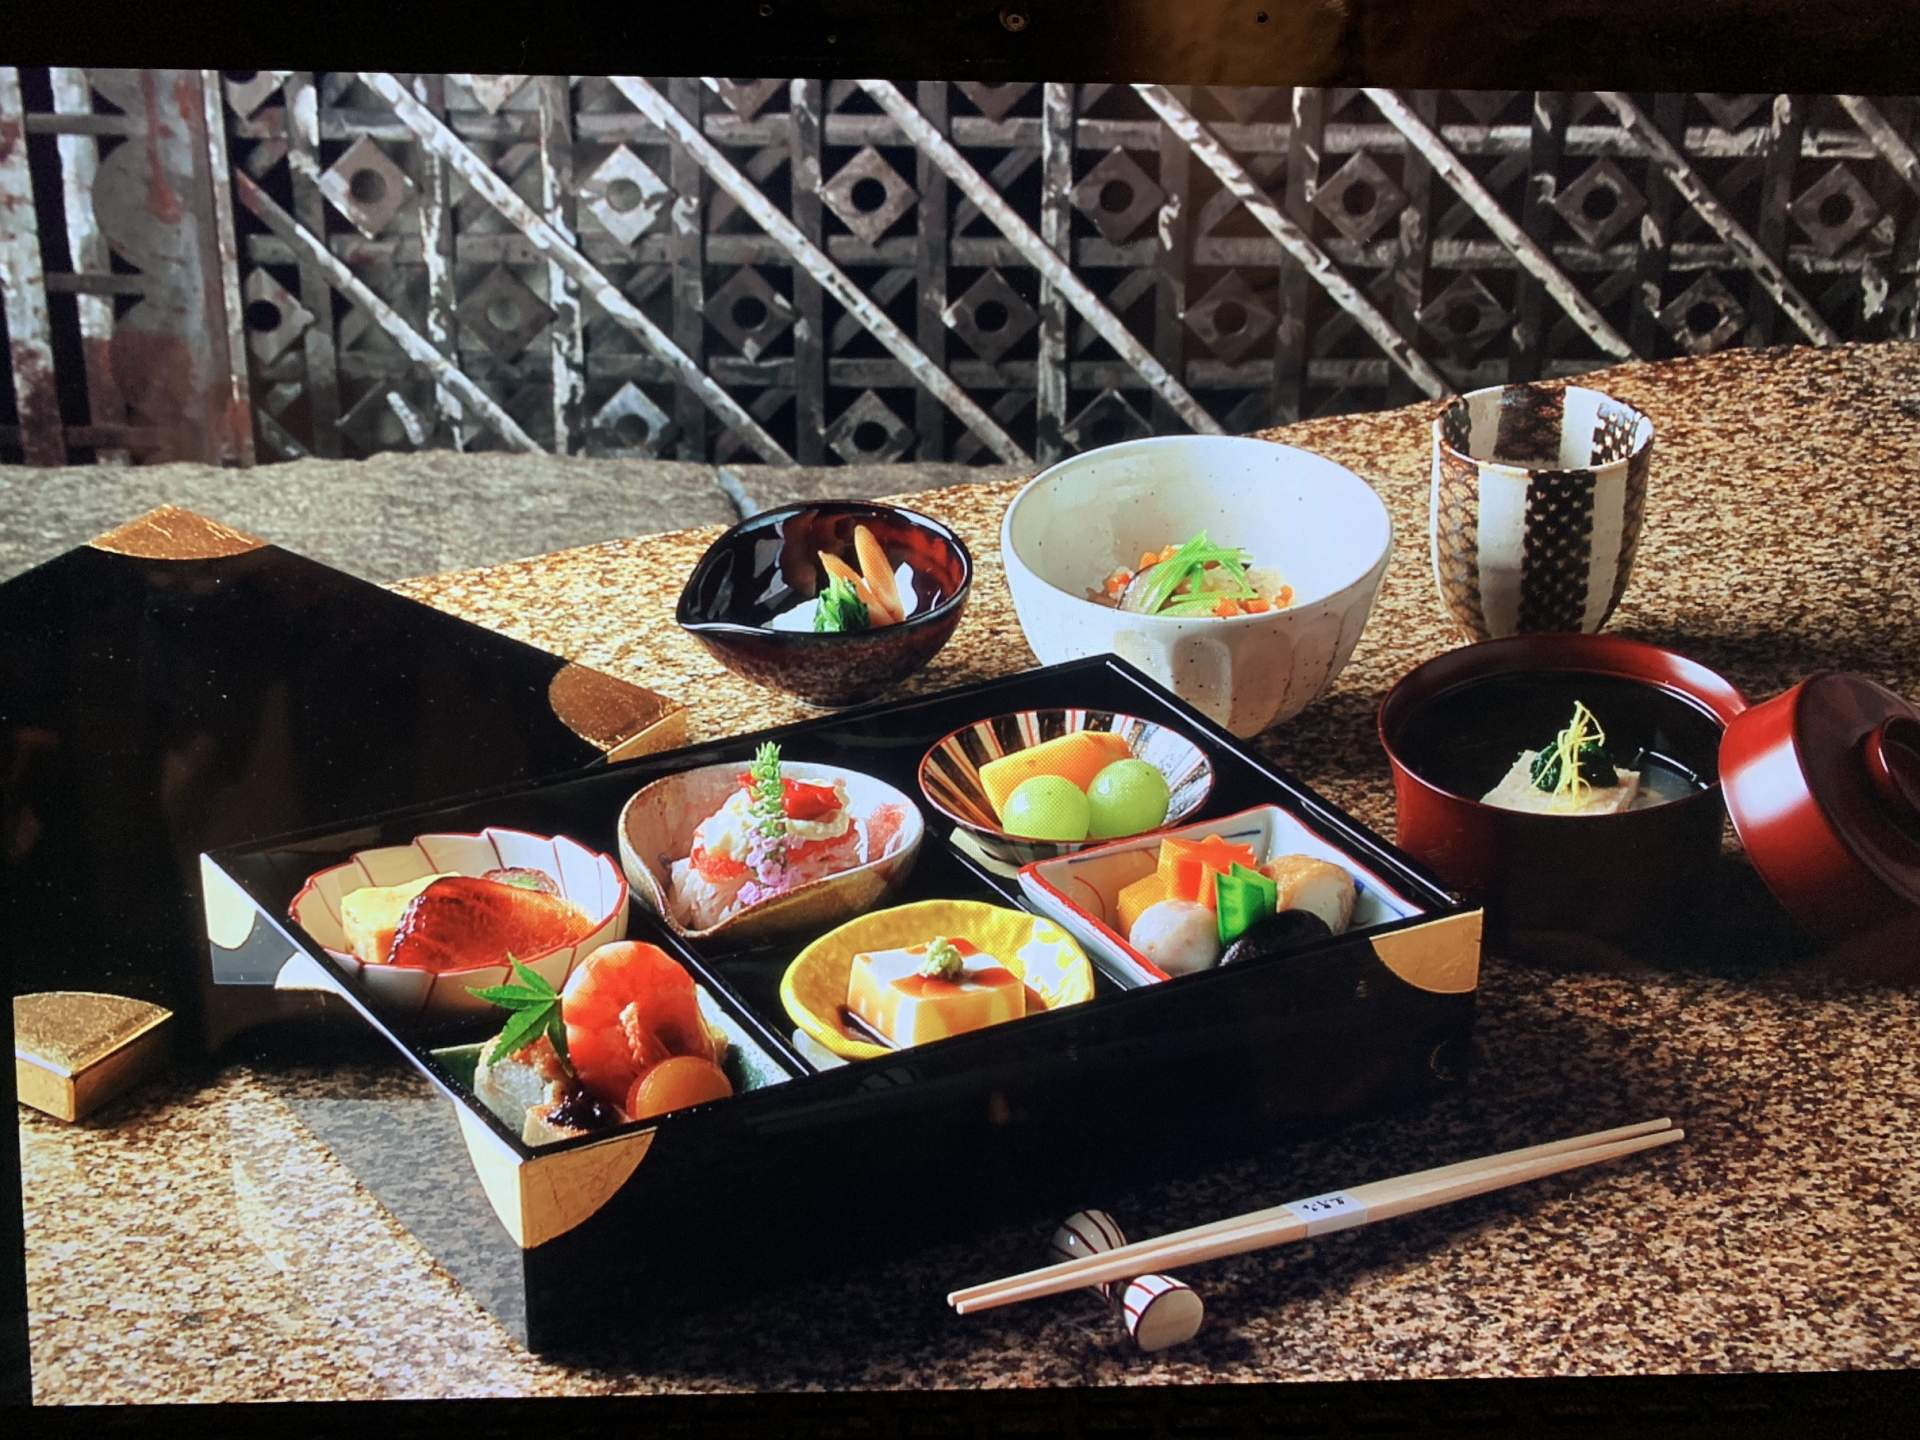 There are also many surrounding restaurants where you can dine during the intermission. Enjoy the charm of well-established famous stores along with the Kabuki.